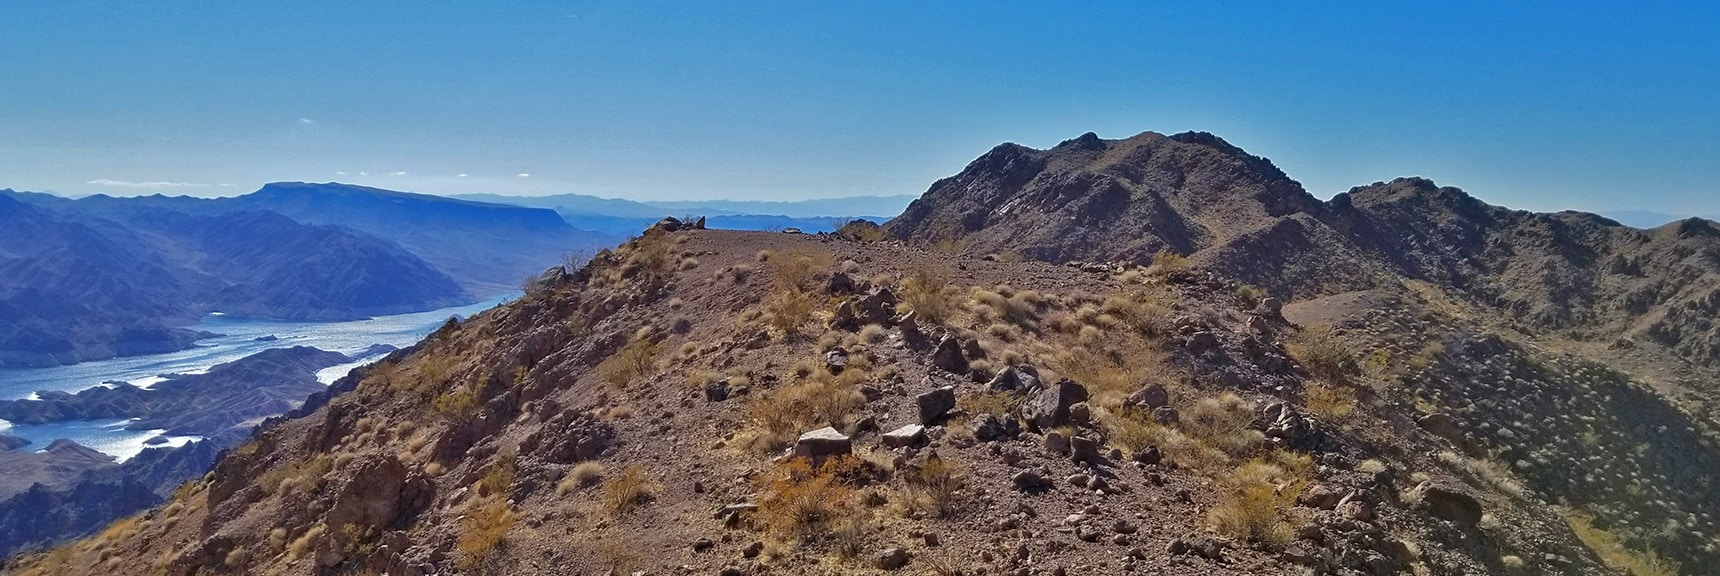 First View of Lake Mead from a Summit Ridge to the North of Hamblin Mt. | Hamblin Mountain, Lake Mead National Conservation Area, Nevada